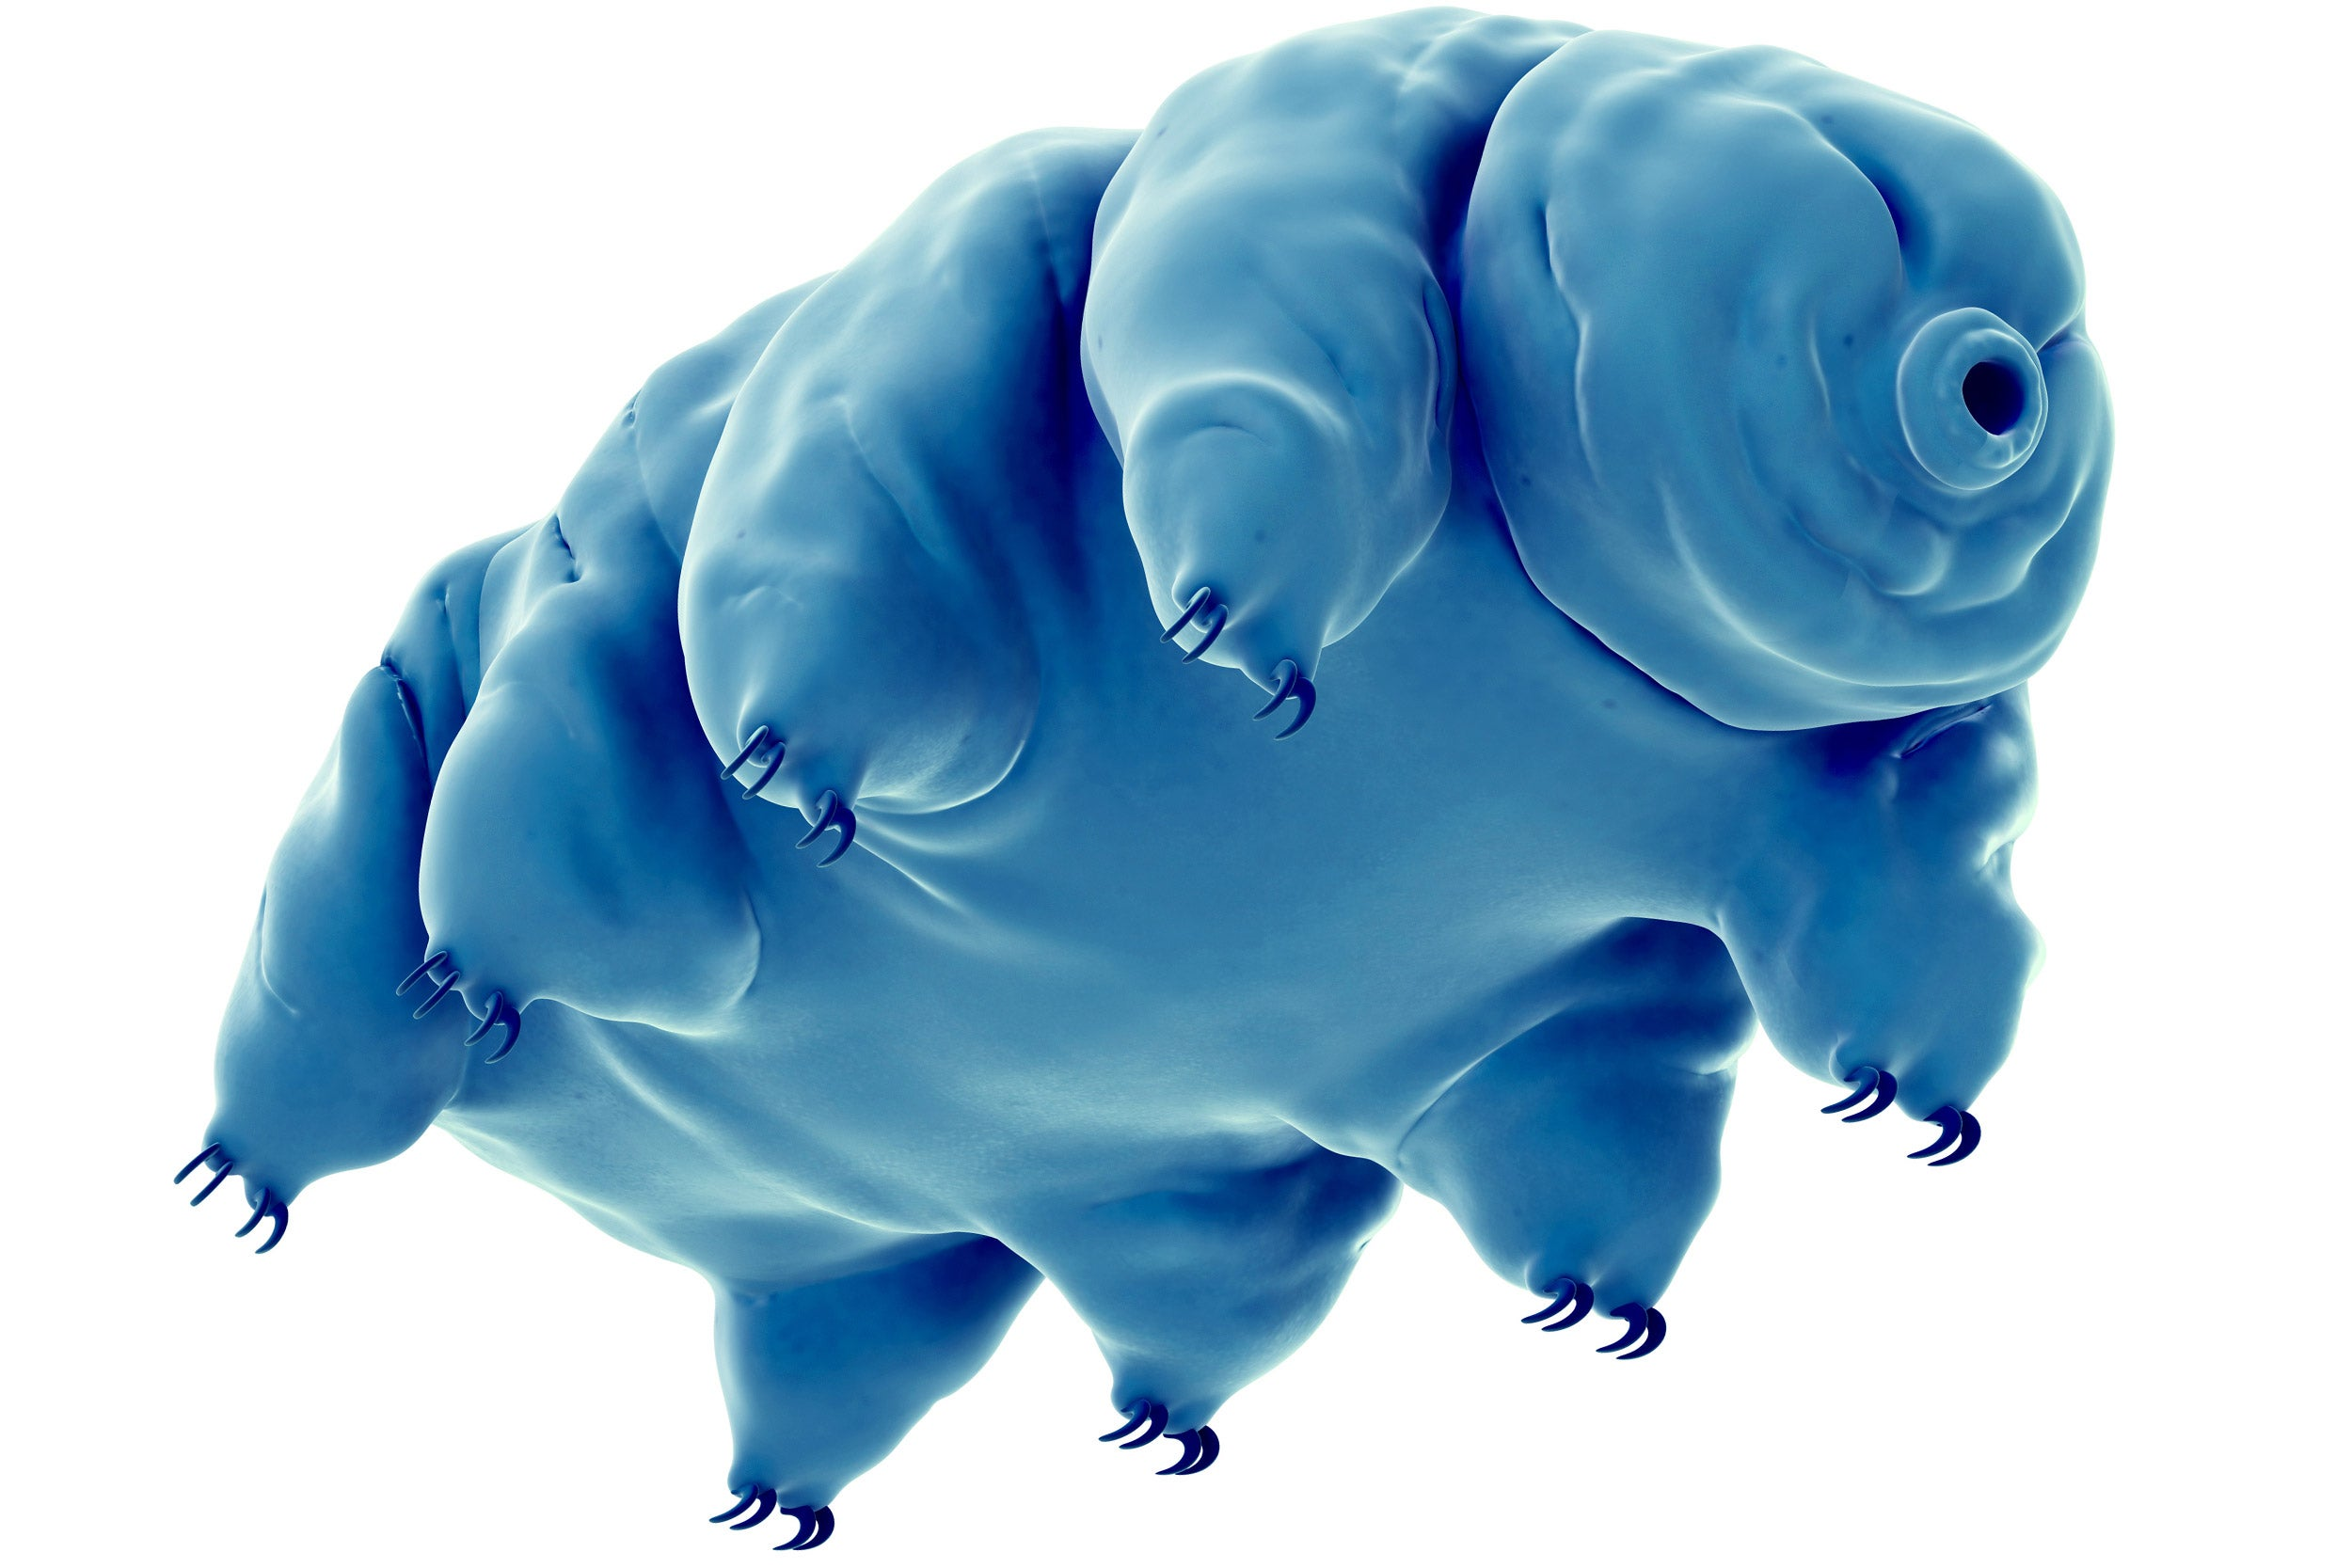 An illustration of a tardigrade, which is capable of withstanding dehydration and cosmic radiation.